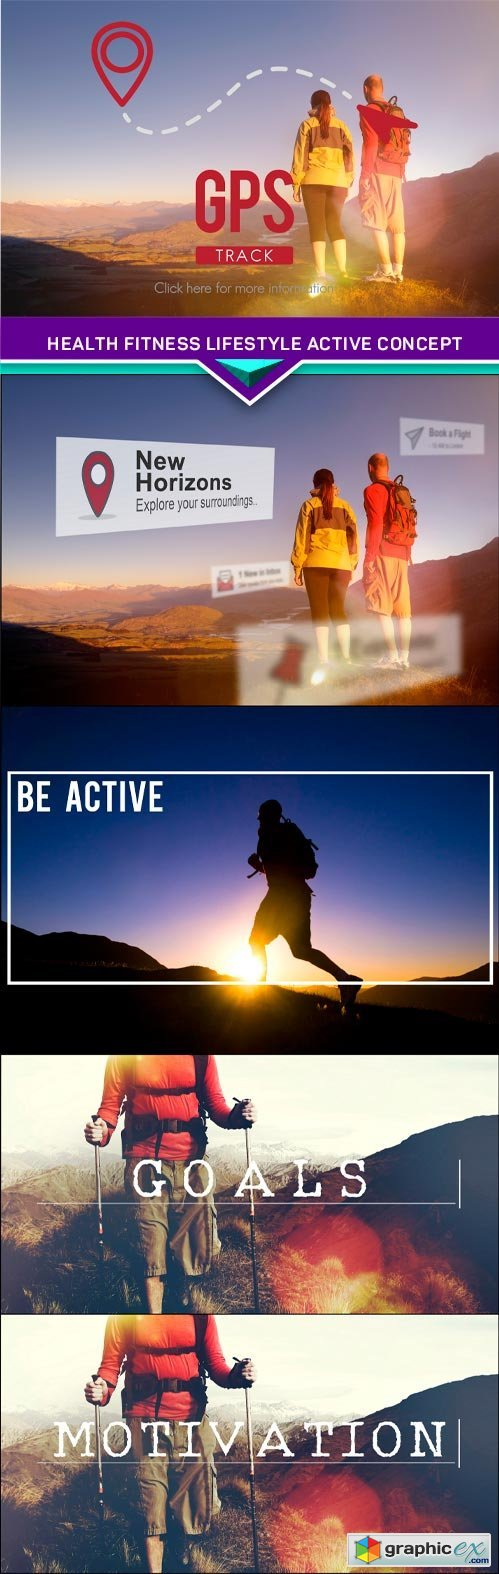 Health Fitness Lifestyle Active Concept 5x JPEG